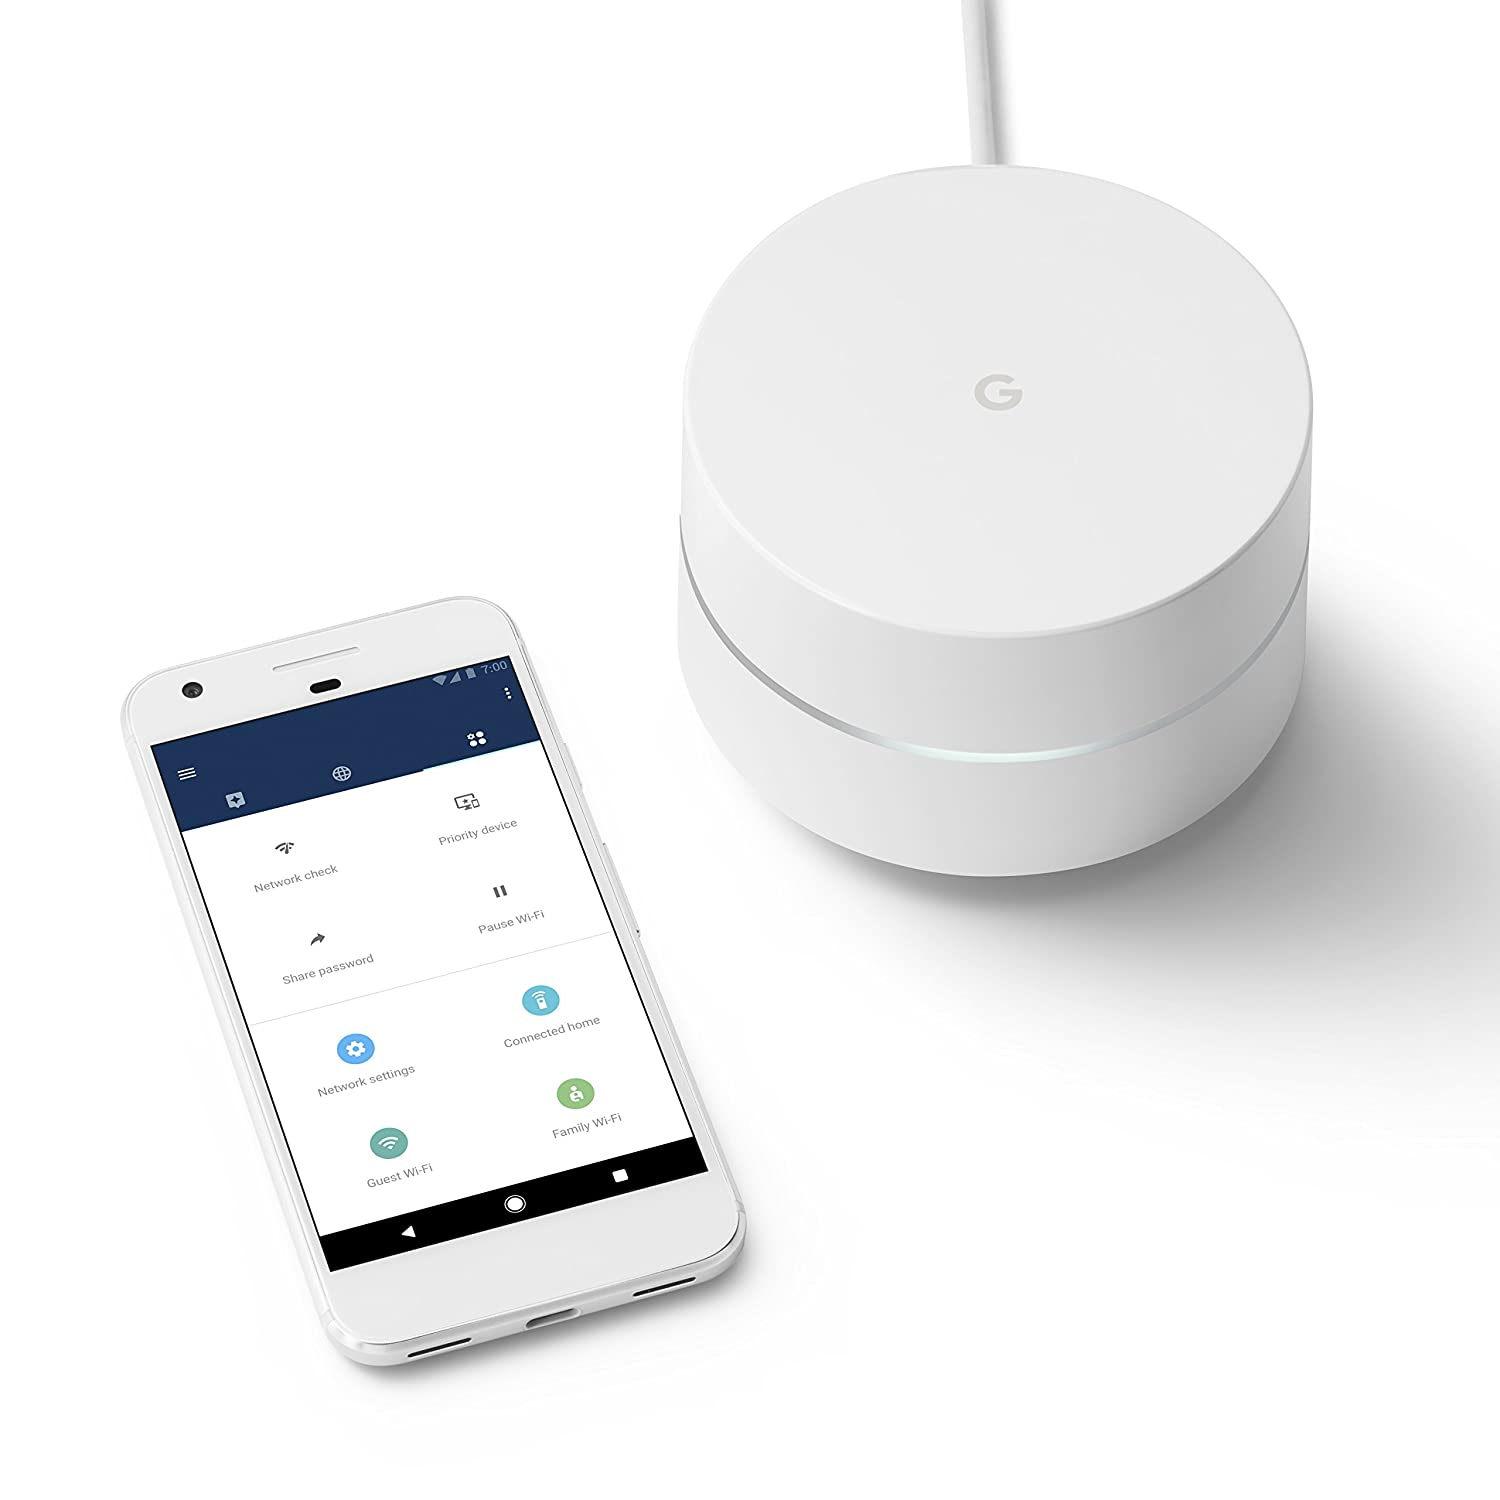 Amazon.com: Google Wifi system (set of 6) - Router replacement for whole home coverage: Computers & Accessories